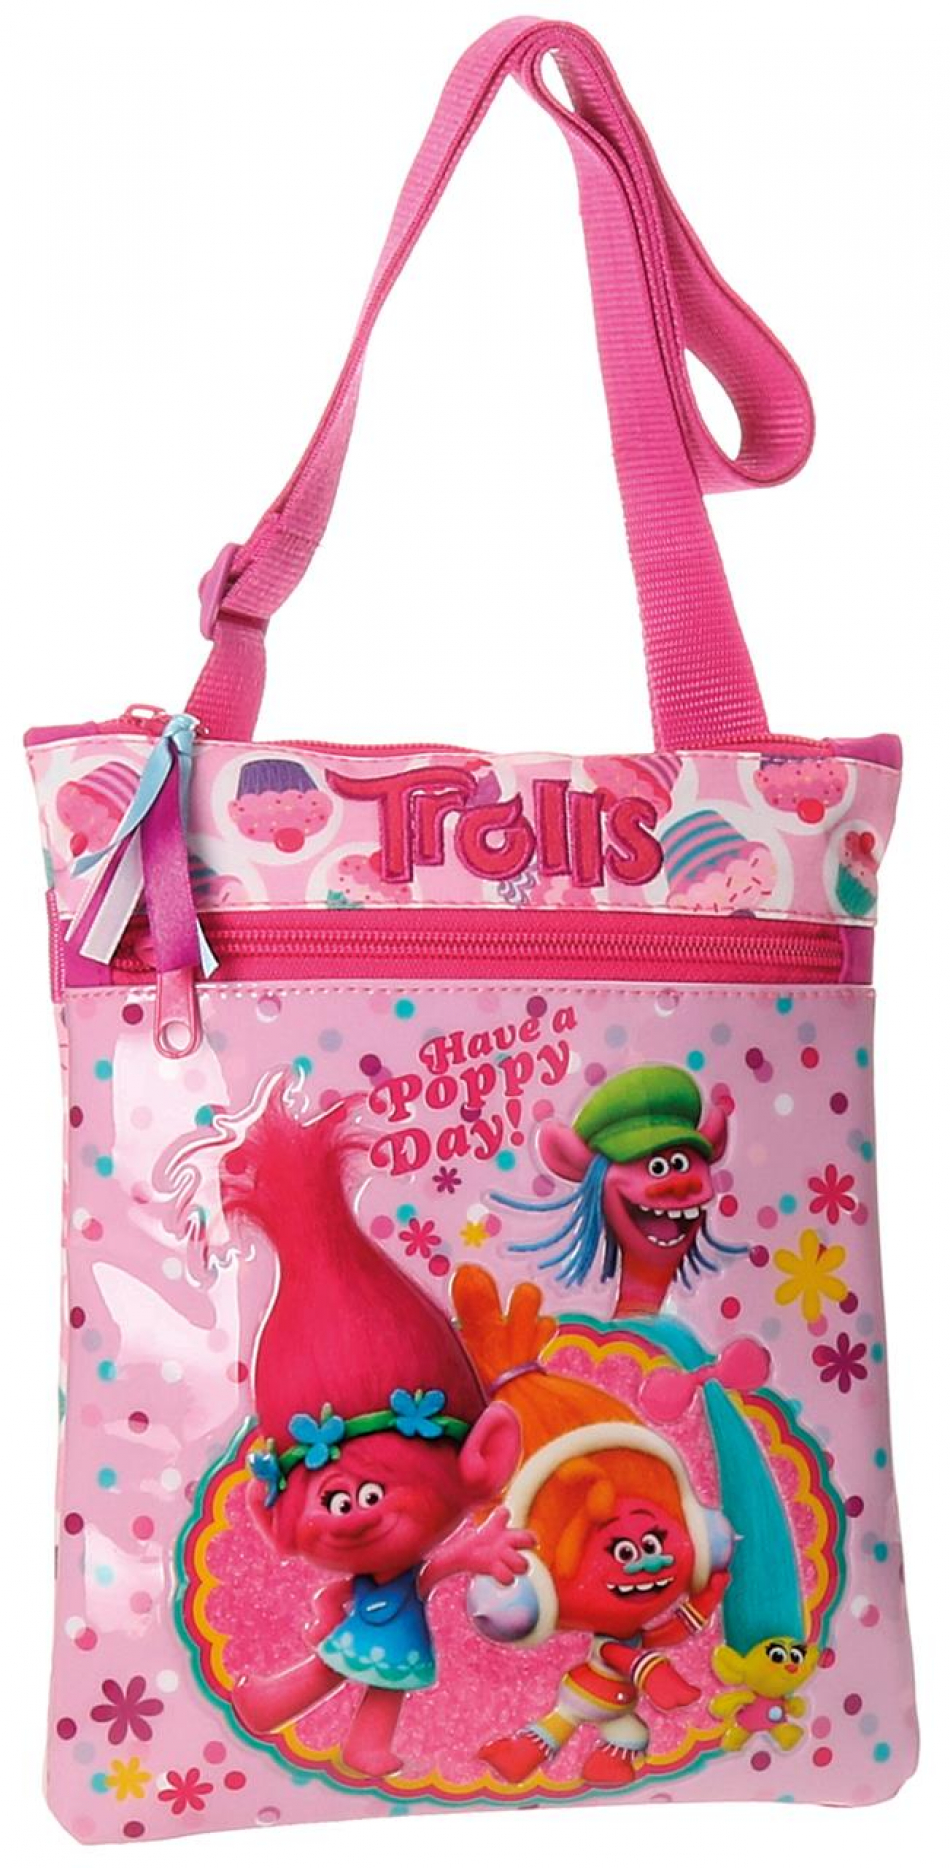 Bandolera Trolls Happy